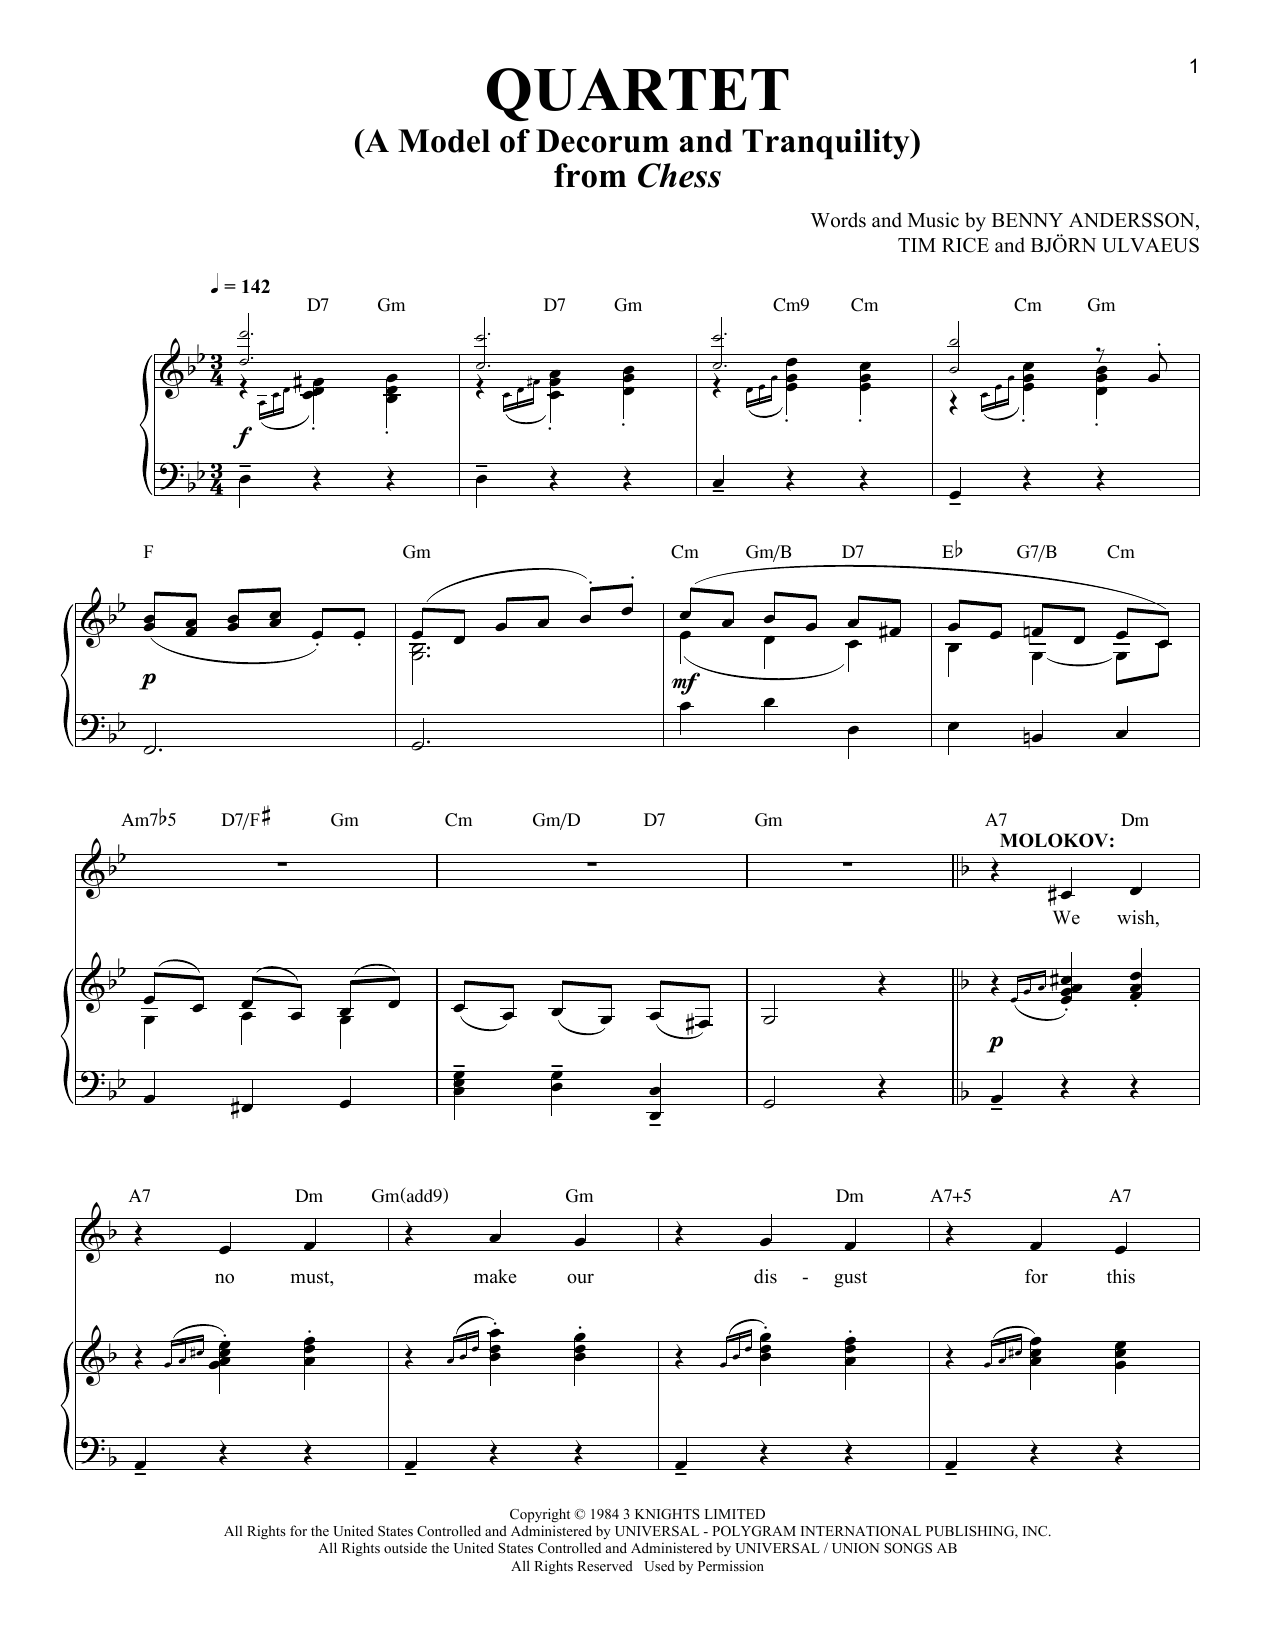 Benny Andersson Quartet (A Model Of Decorum and Tranquility) sheet music notes and chords. Download Printable PDF.